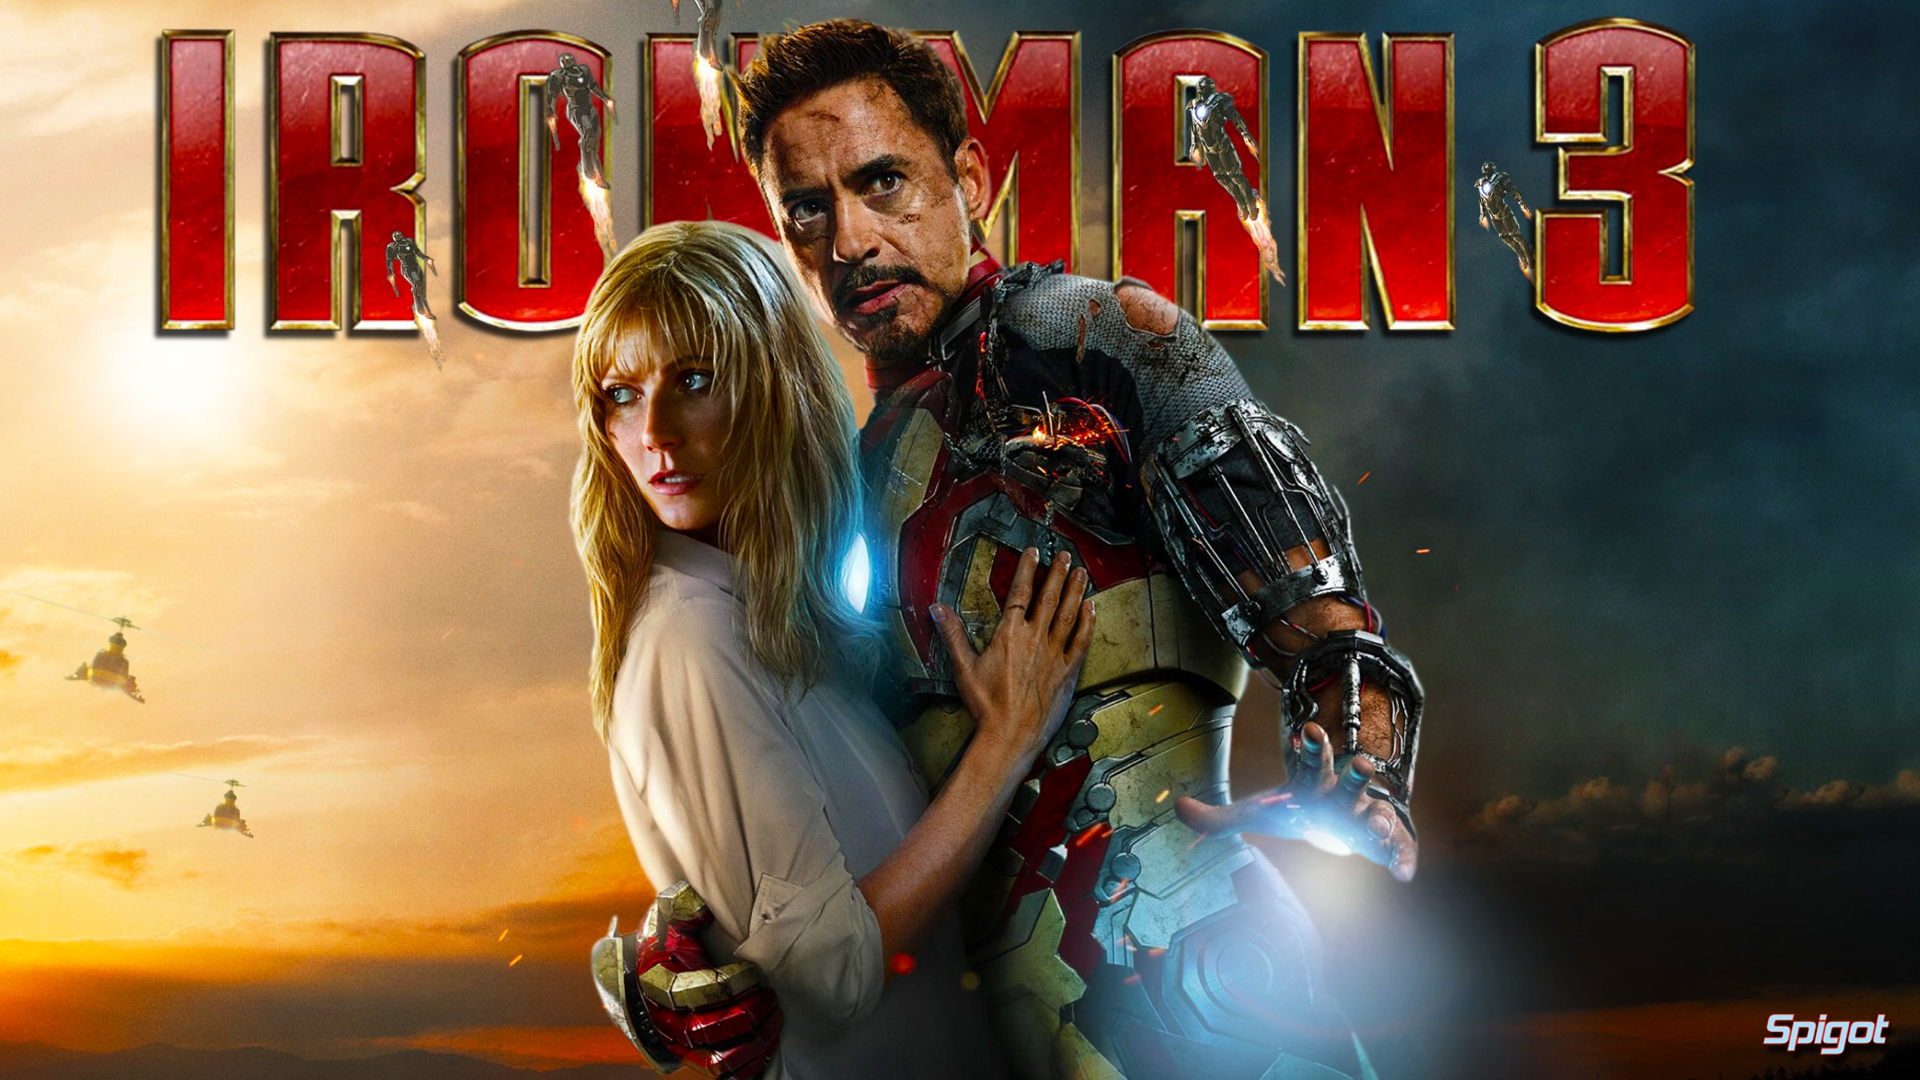 'Iron Man 3' Is Officially One Of The Highest Grossing Movies Ever